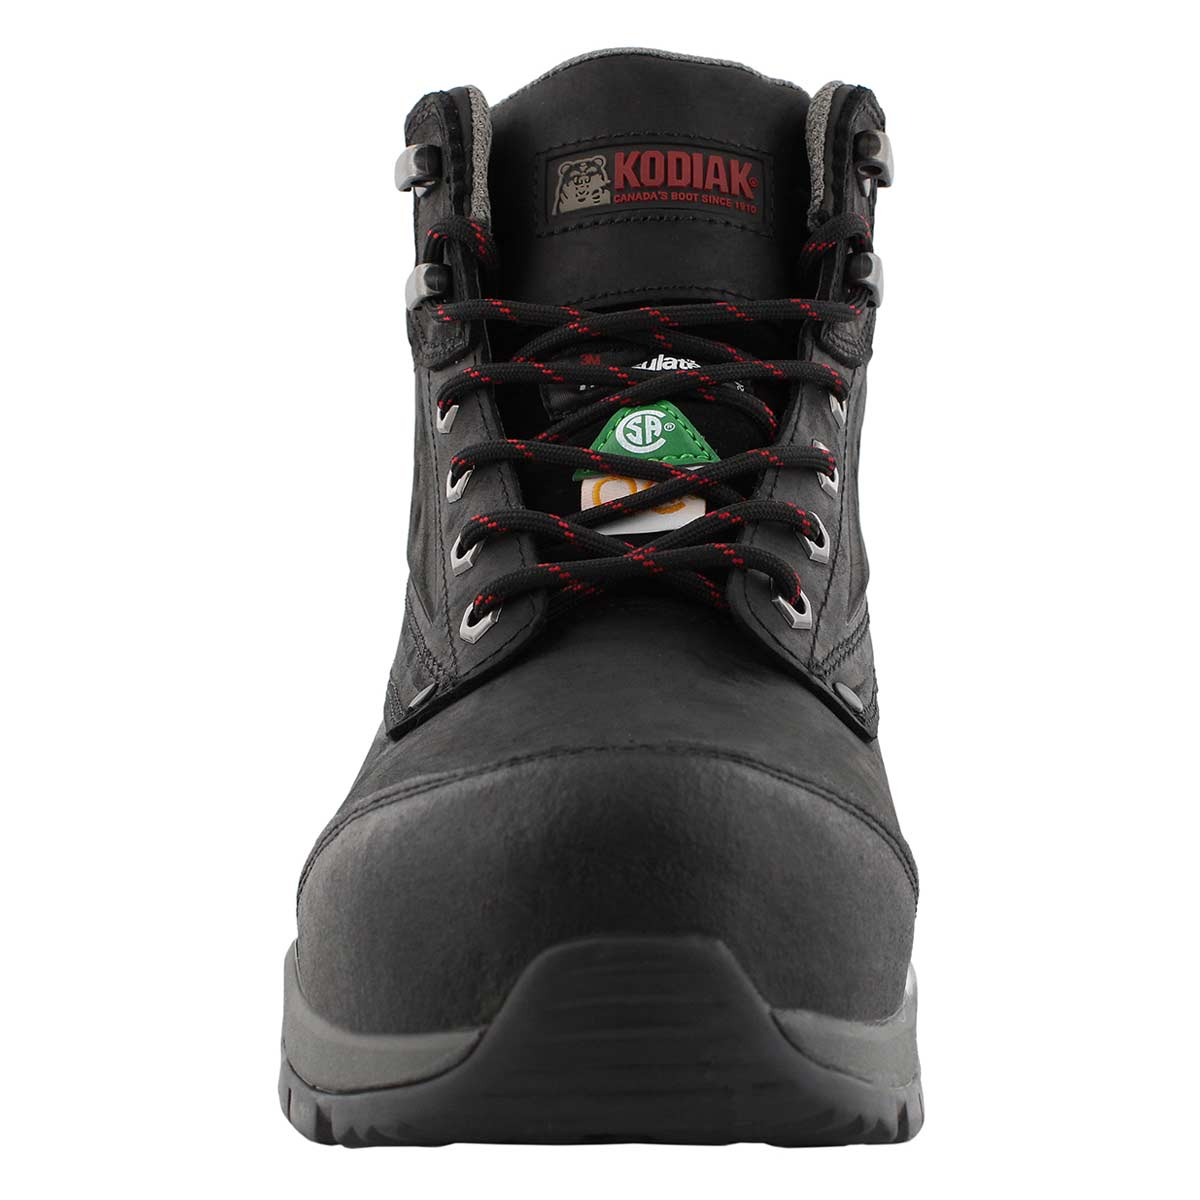 Mns Crusade black lace up wtpf CSA boot